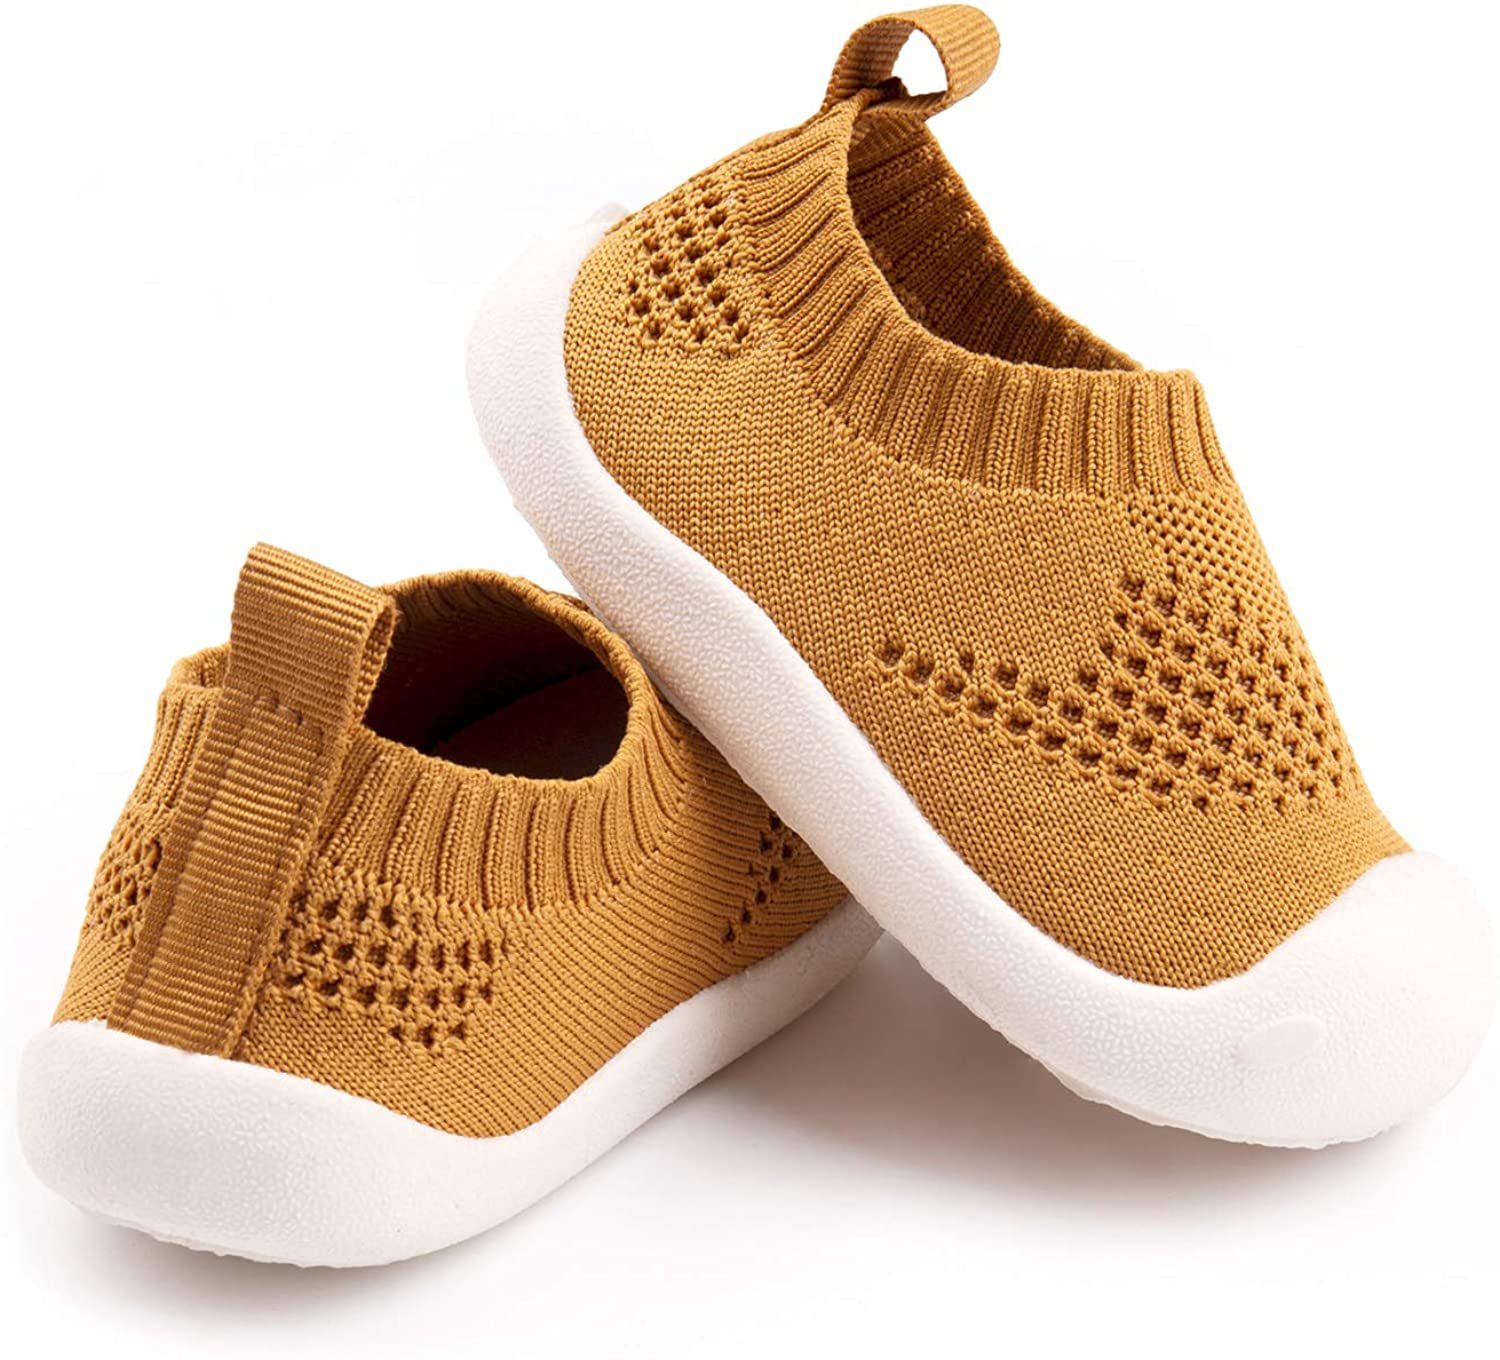 Baby First-Walking Shoes 1-4 Years Kid Shoes Trainers Toddler Infant Boys Girls Soft Sole Non Slip Cotton Canvas Mesh Breathable Lightweight TPR Material Slip-on Sneakers Outdoor